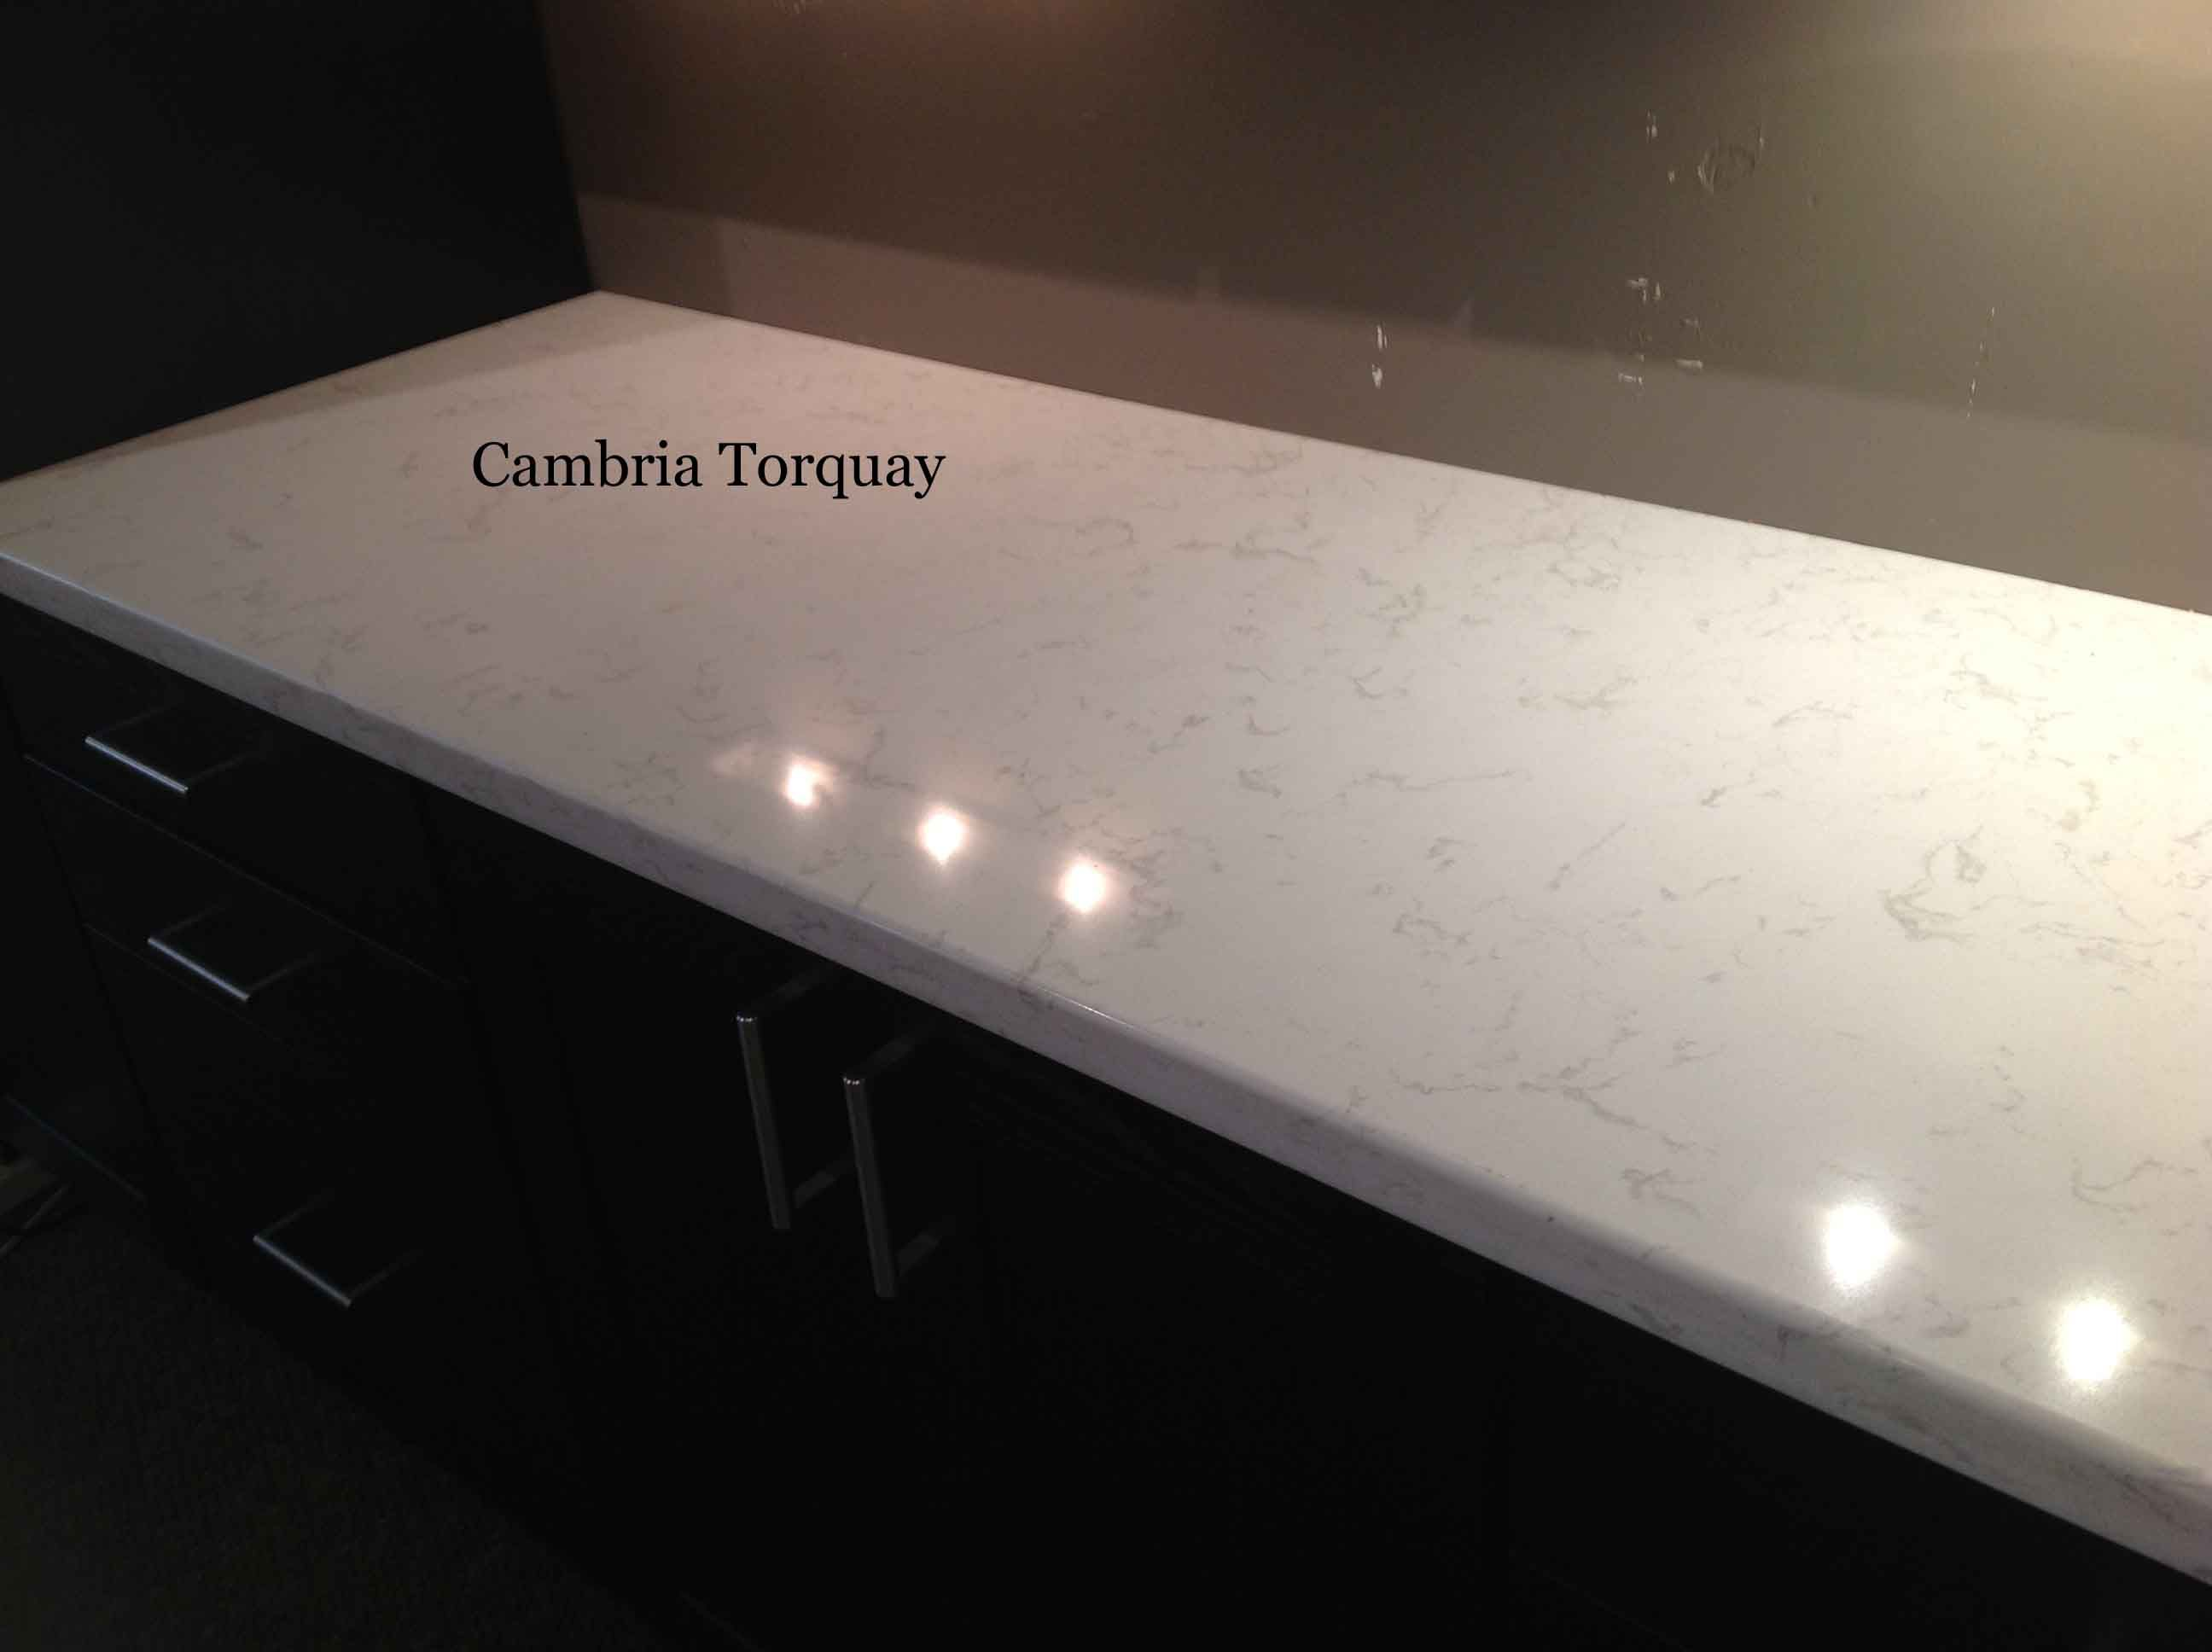 Cambria quartz slab size for Cambria quartz slab size